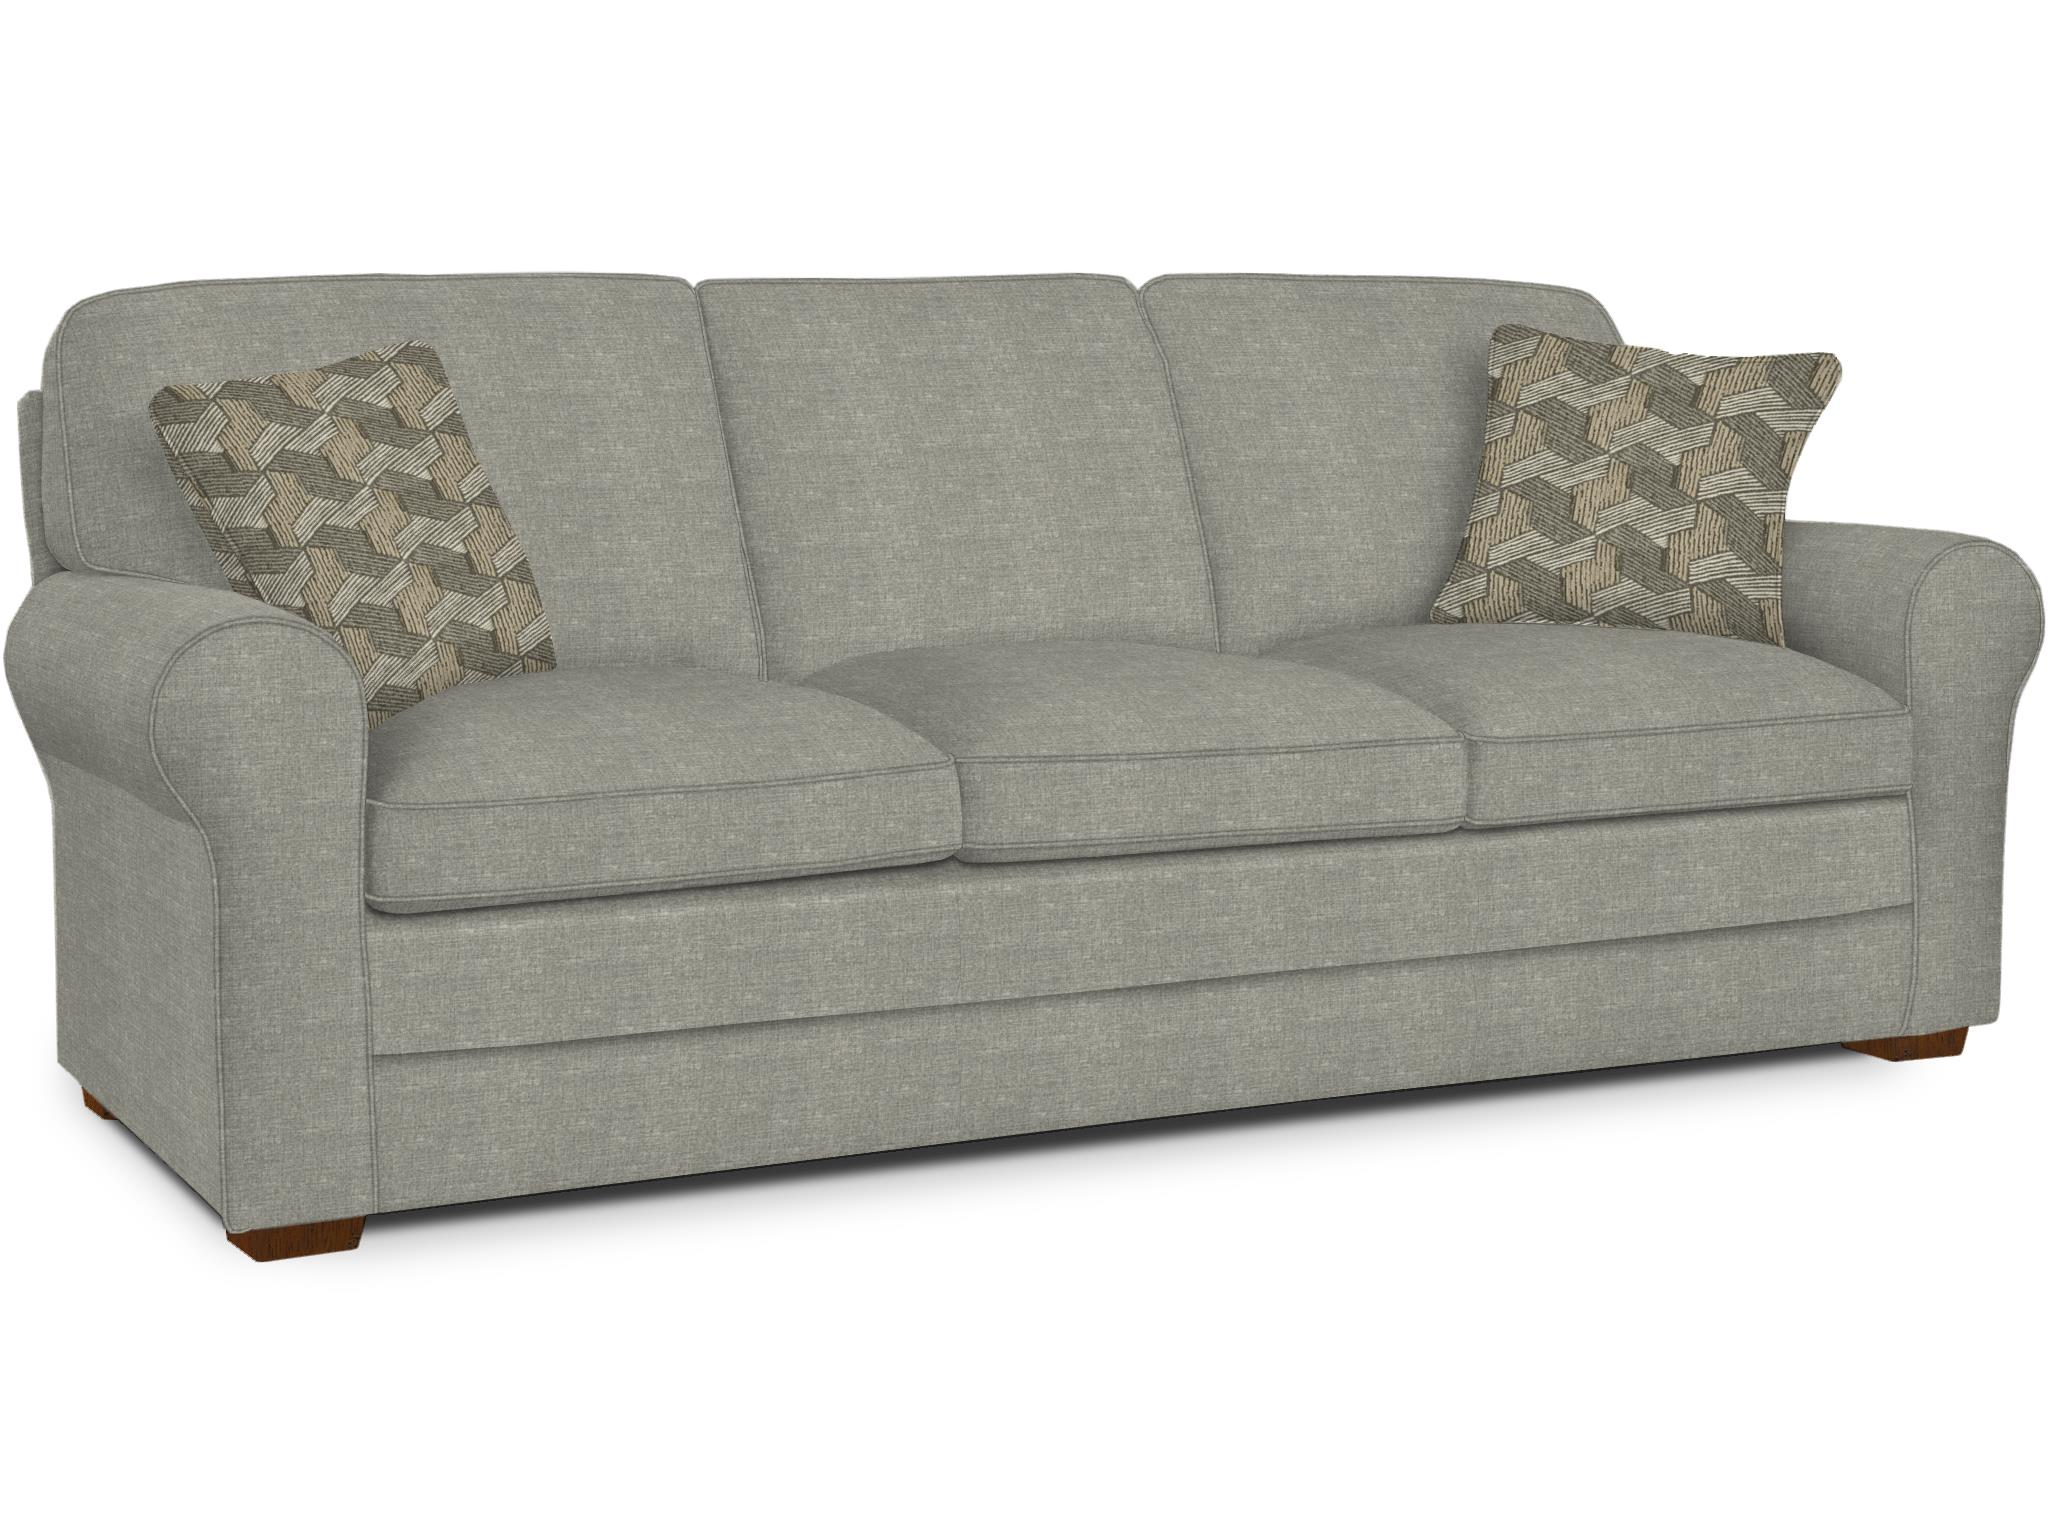 Nicodemus Sofa Comfort Center Furniture And Mattresses